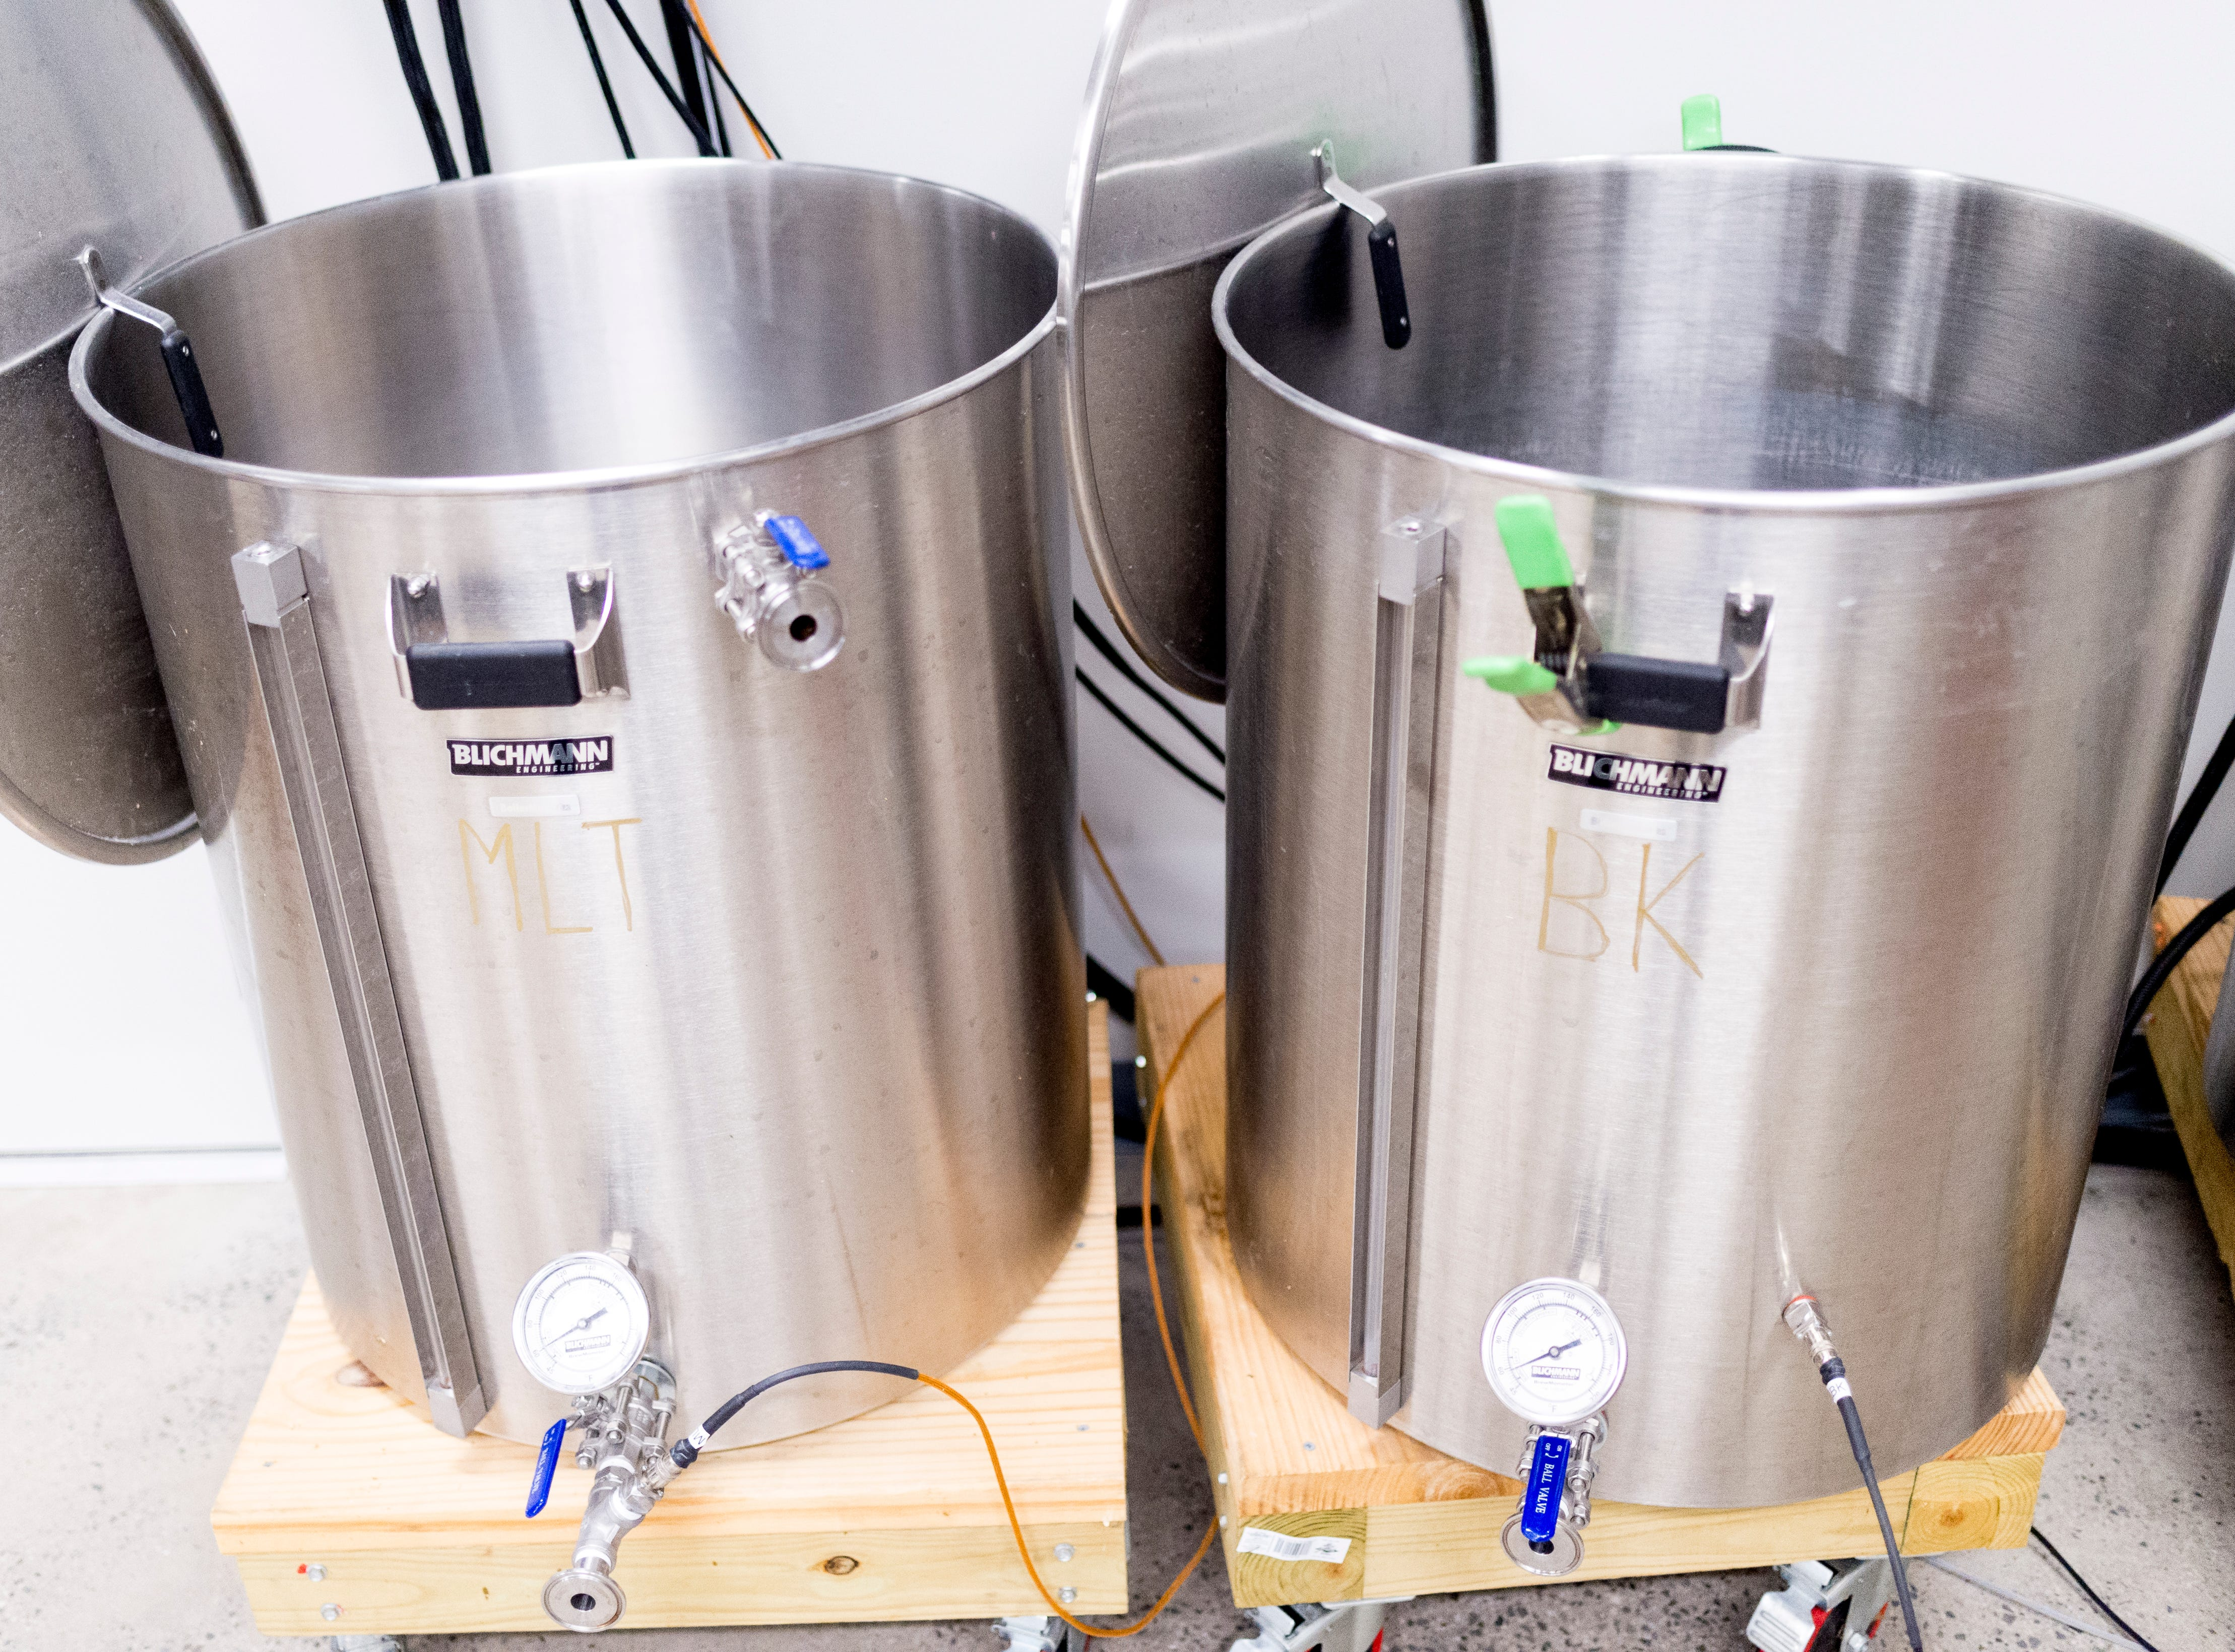 Pilot Brewing Tanks for test batches inside the brewery at Elst Brewing Company on 2417 N Central St. in Knoxville, Tennessee on Thursday, November 1, 2018. Elst plans to open its door beginning next year.